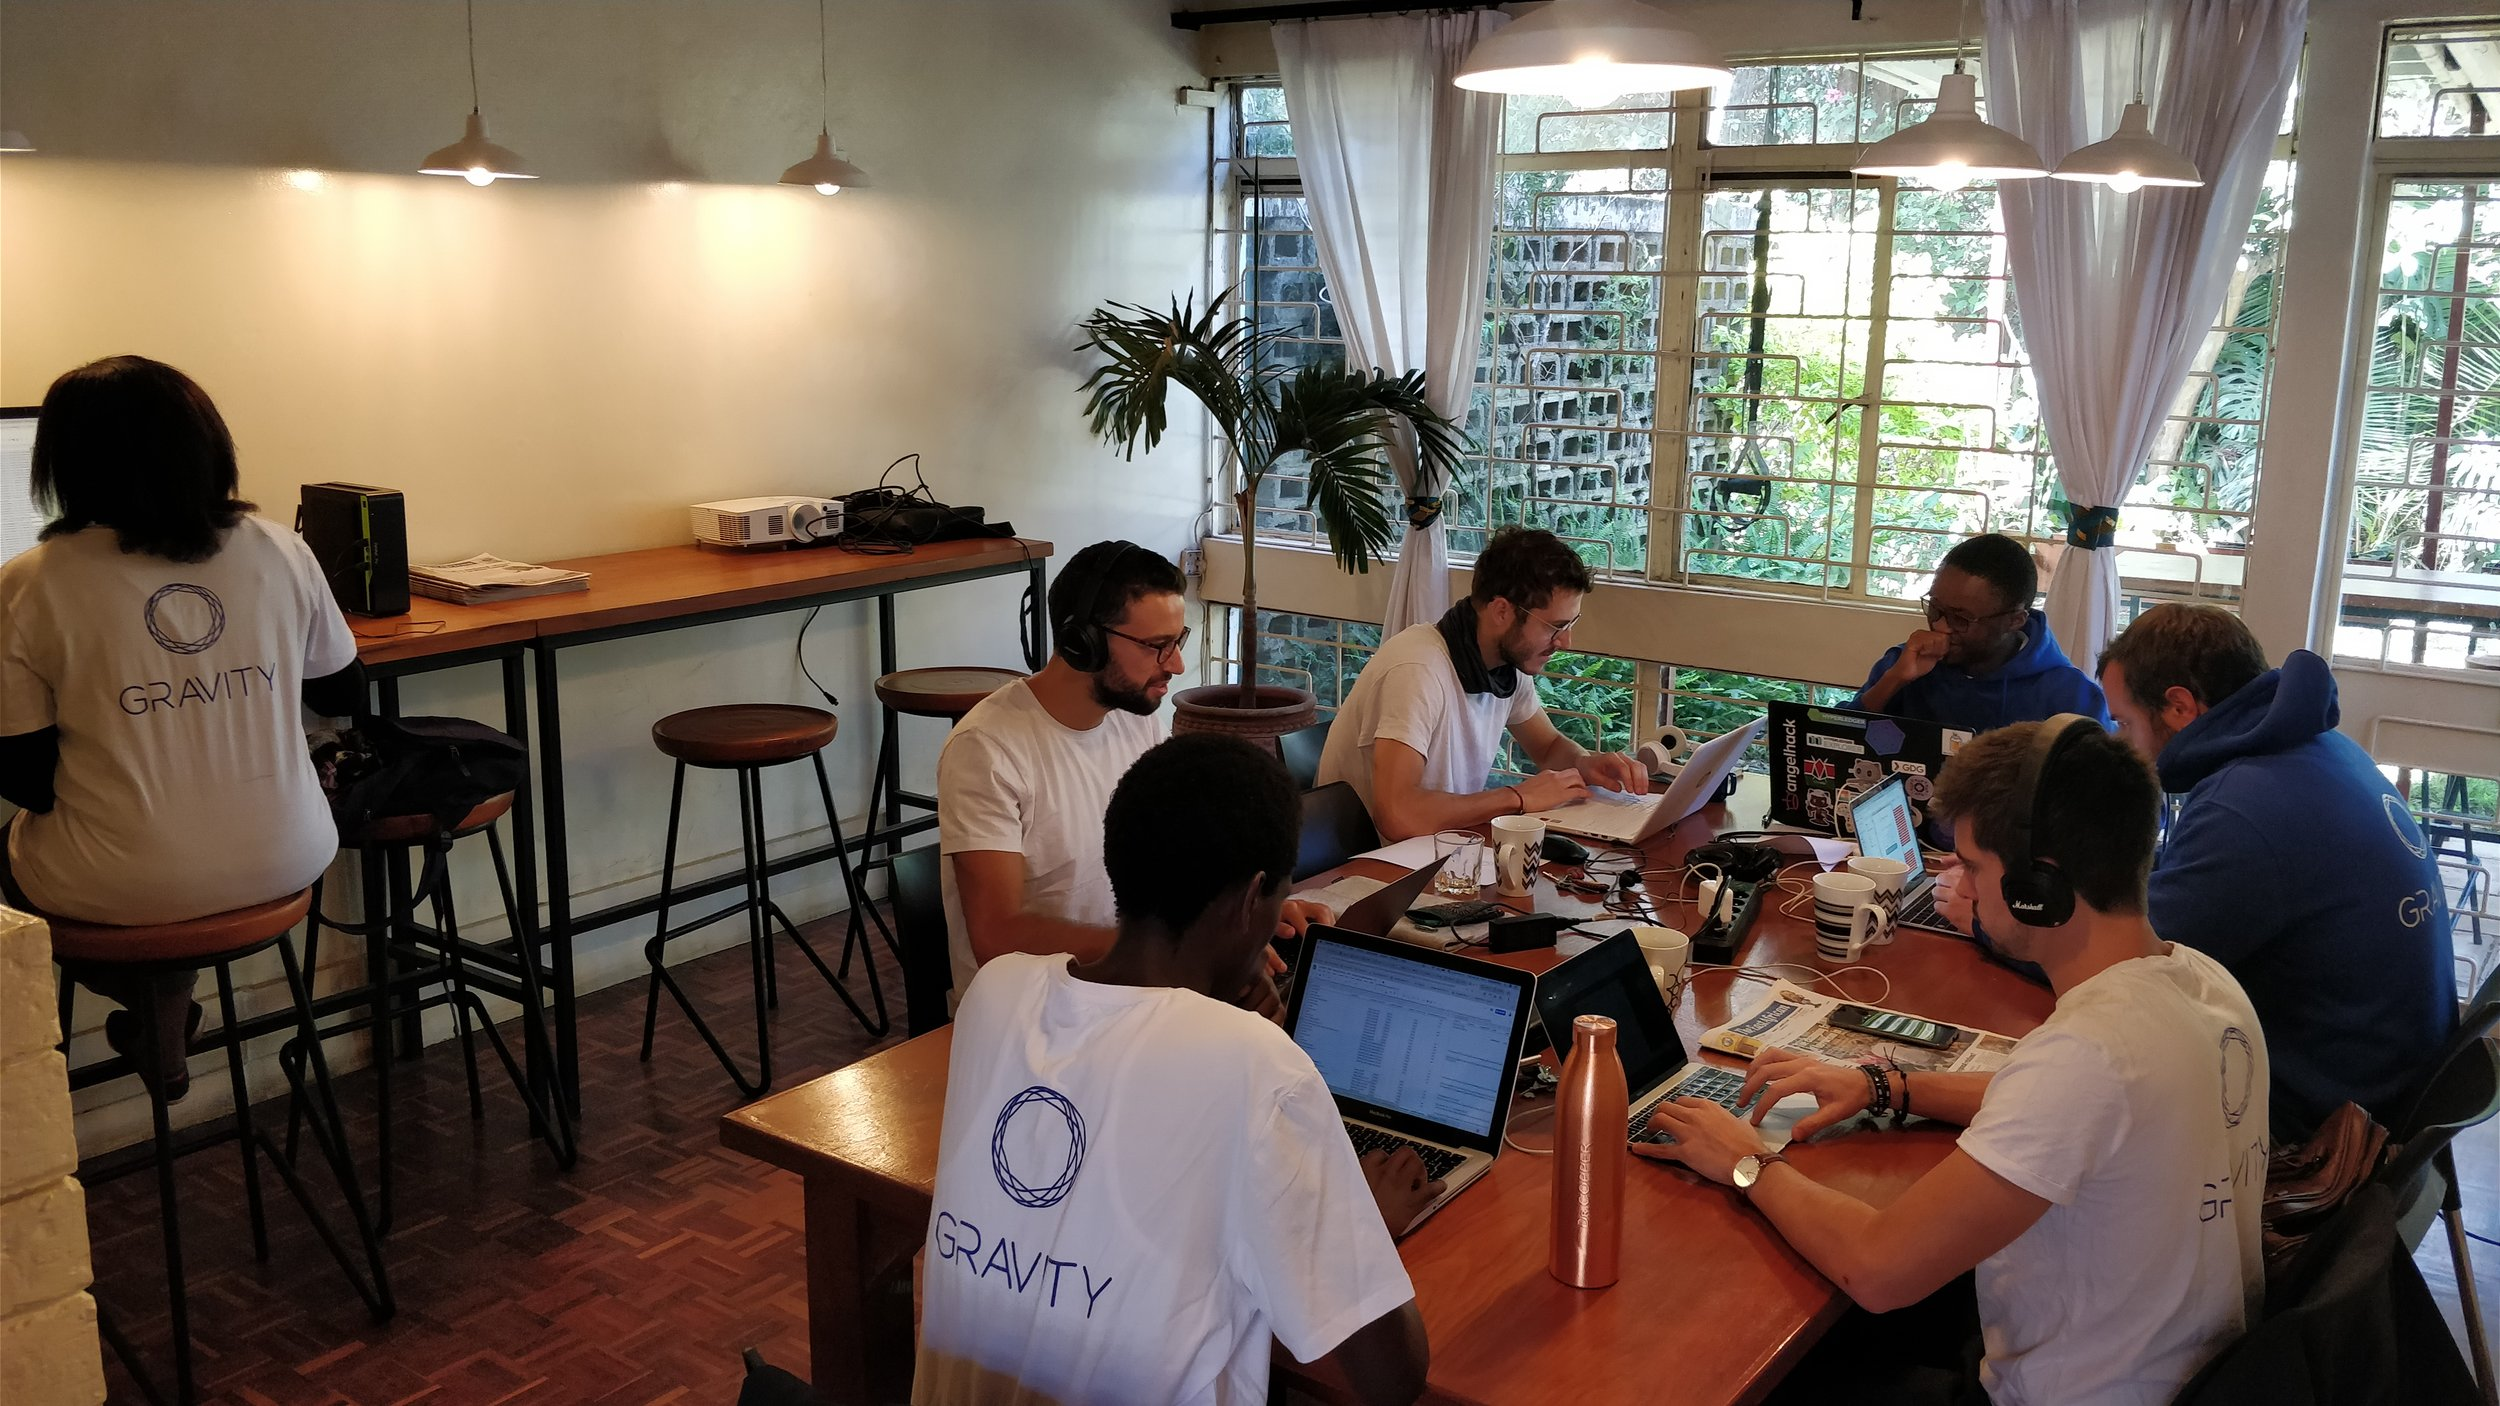 Team - Our core team consists of experts with decades of experience in technology, mobile financial services and banking. We're a close-knit team based in Paris, France and in Nairobi, Kenya.